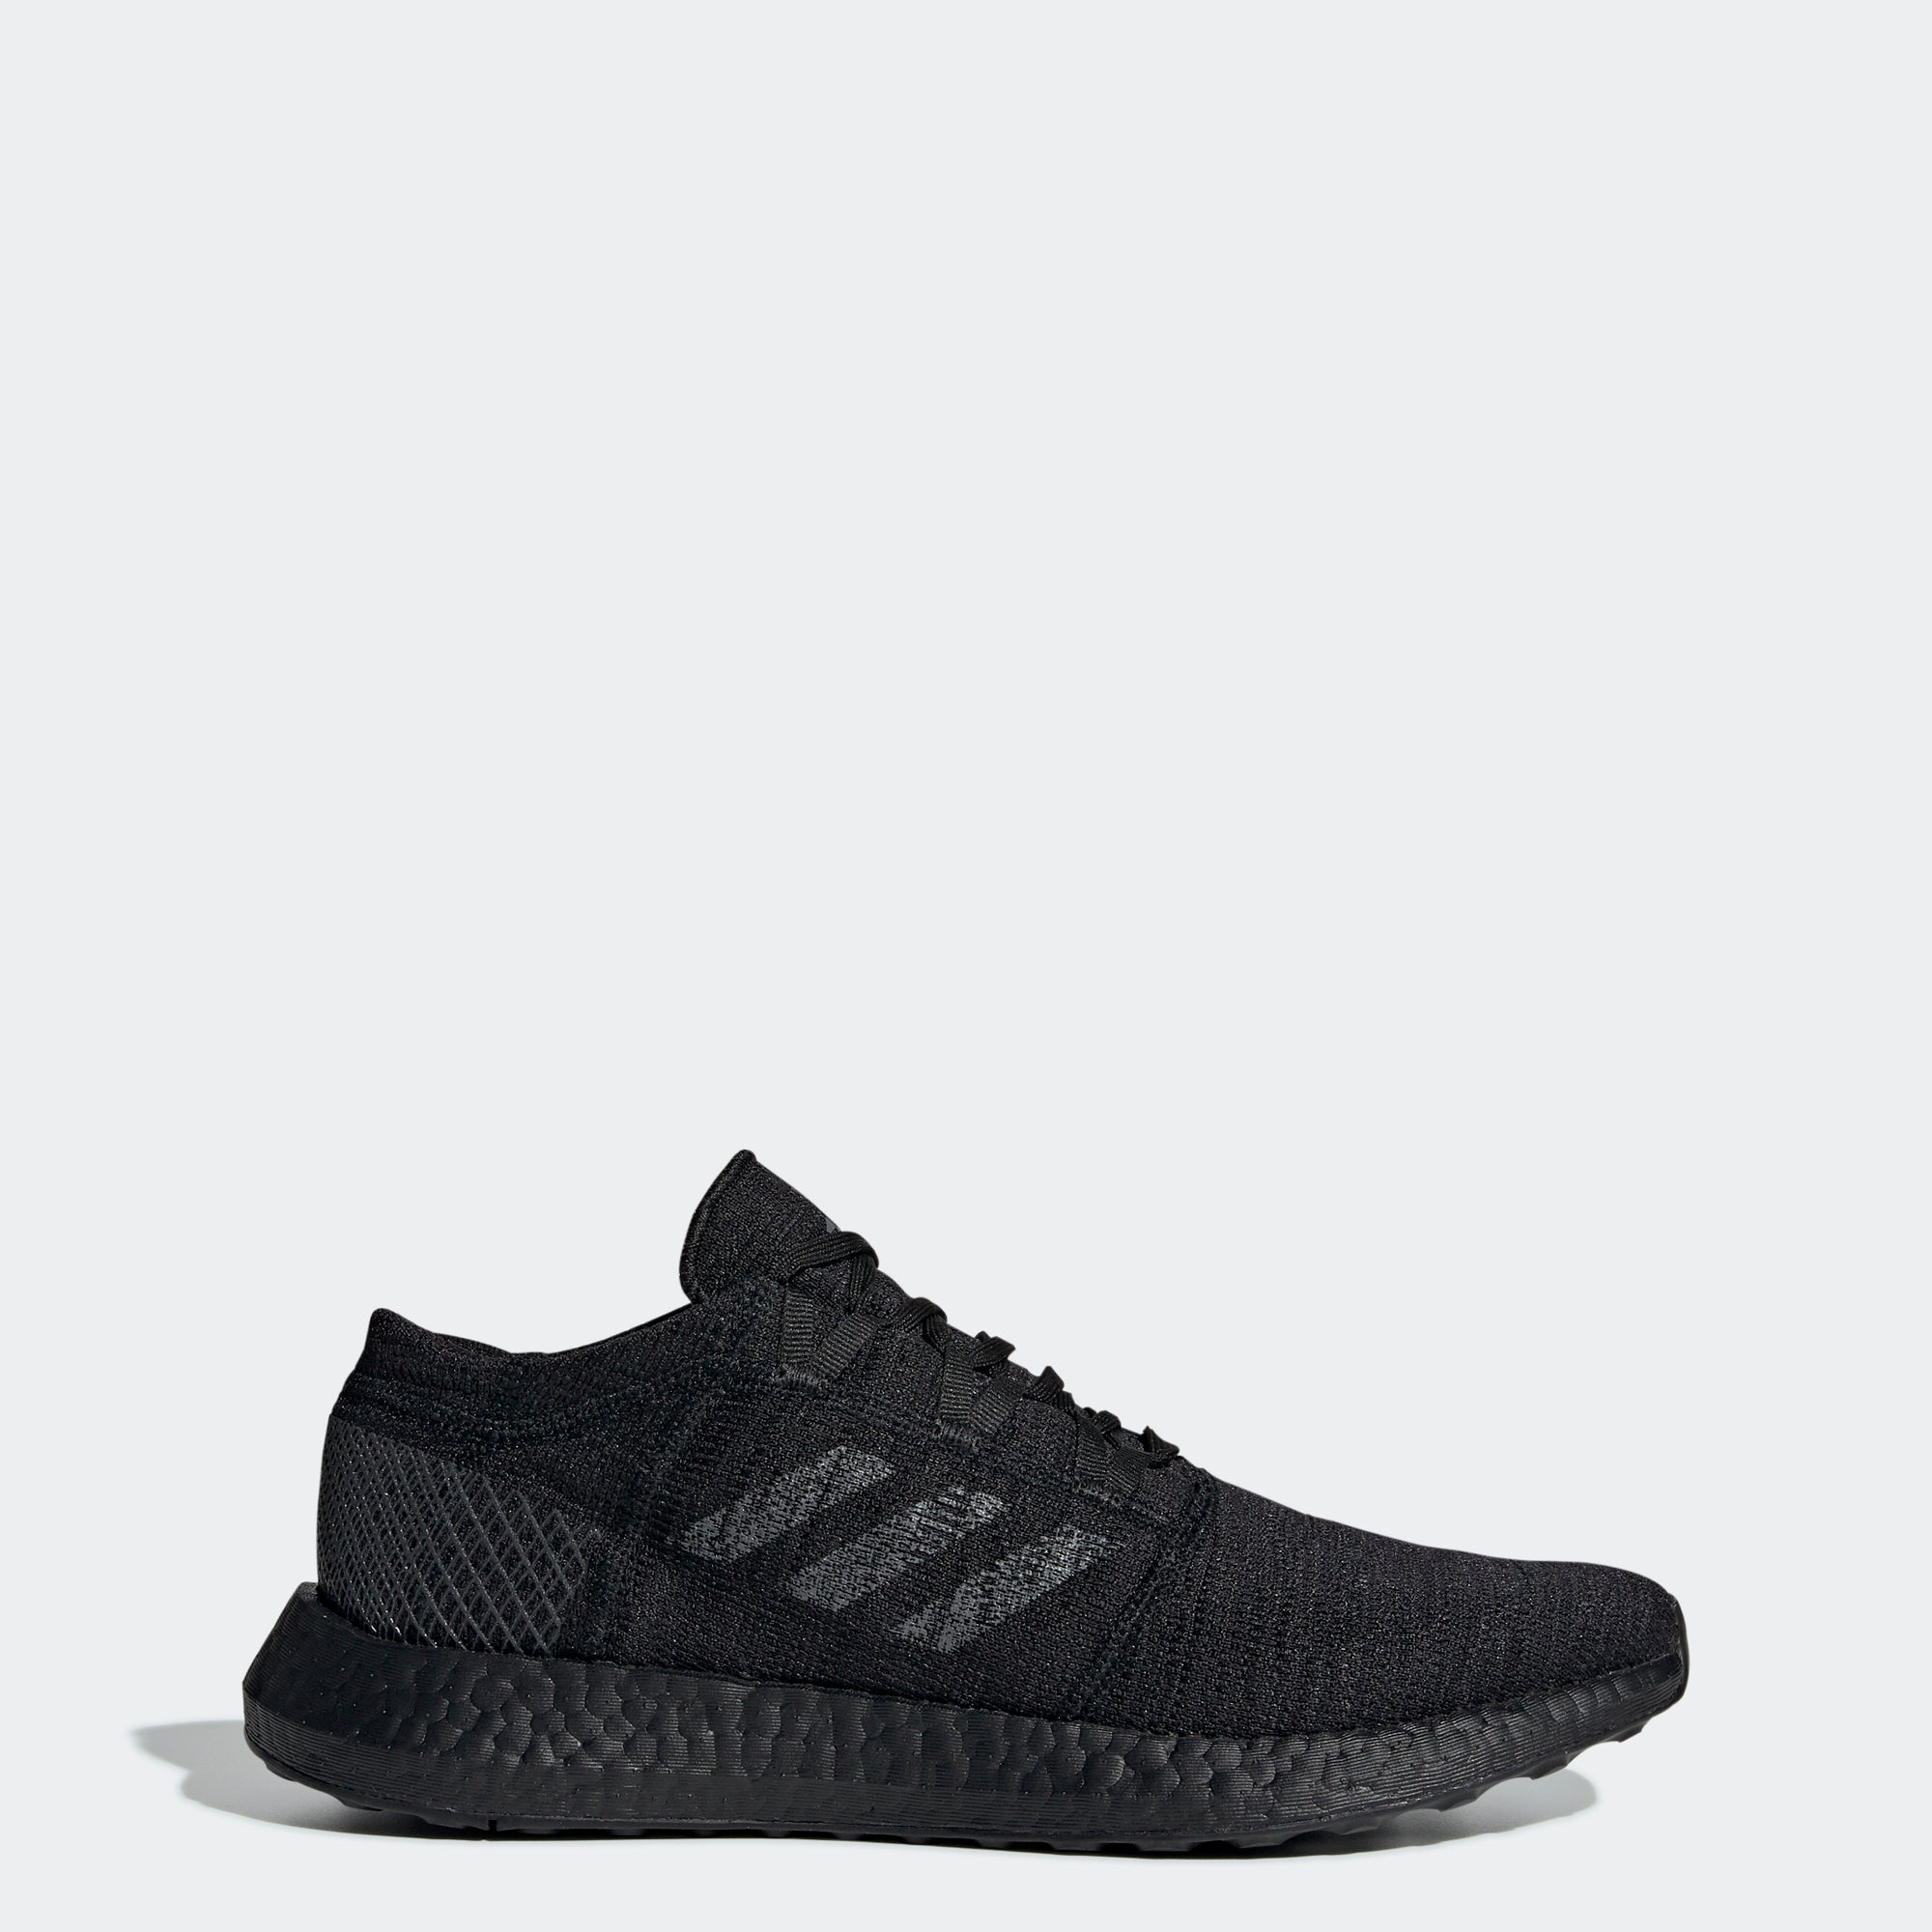 f326a1f528dd2 Men s adidas Running PureBOOST Go Shoes Black Grey